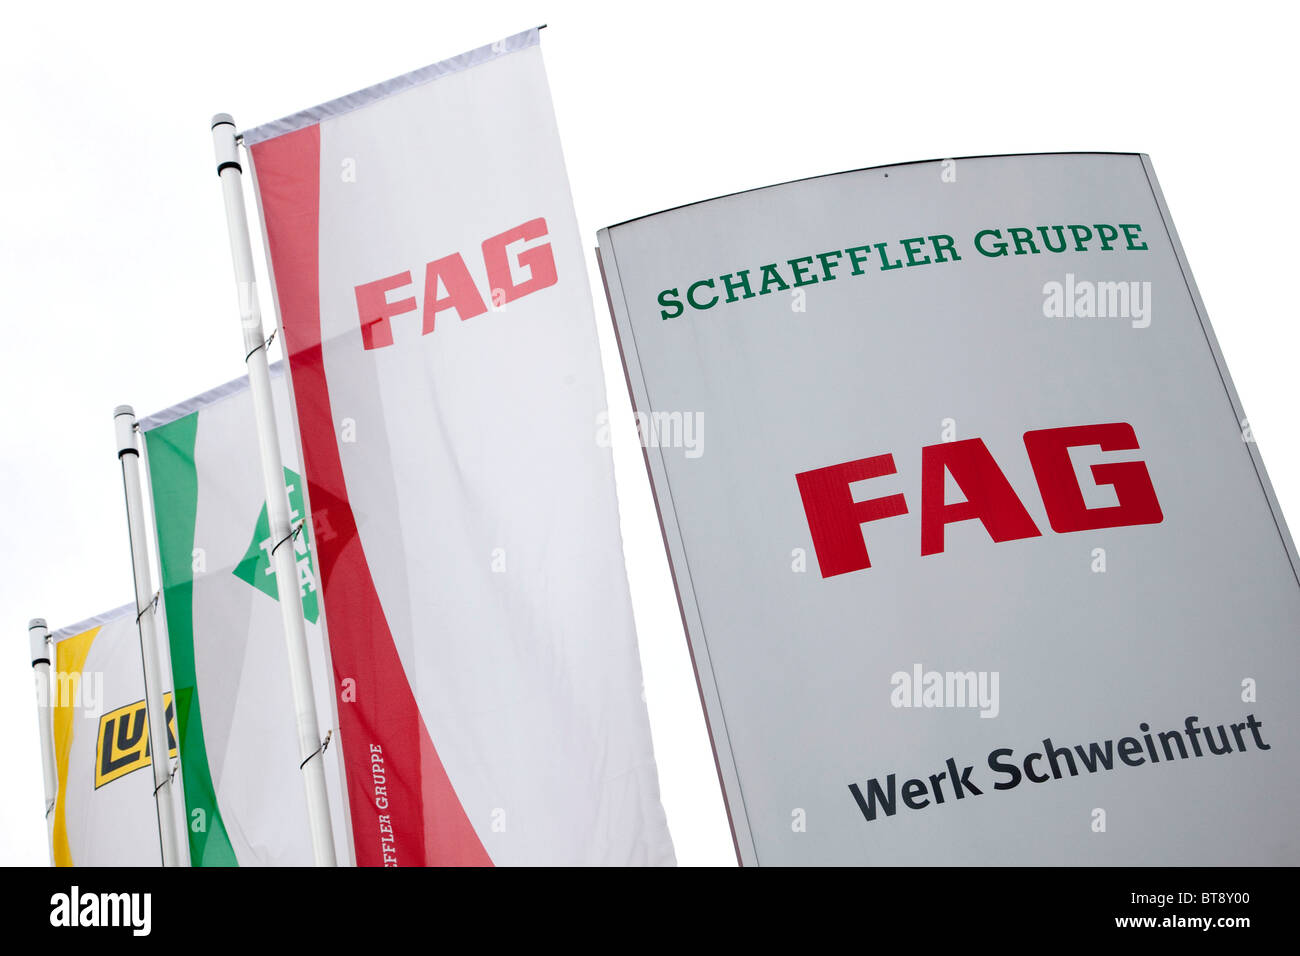 FAG Schaeffler KG, Schweinfurt, Bavaria, Germany, Europe - Stock Image